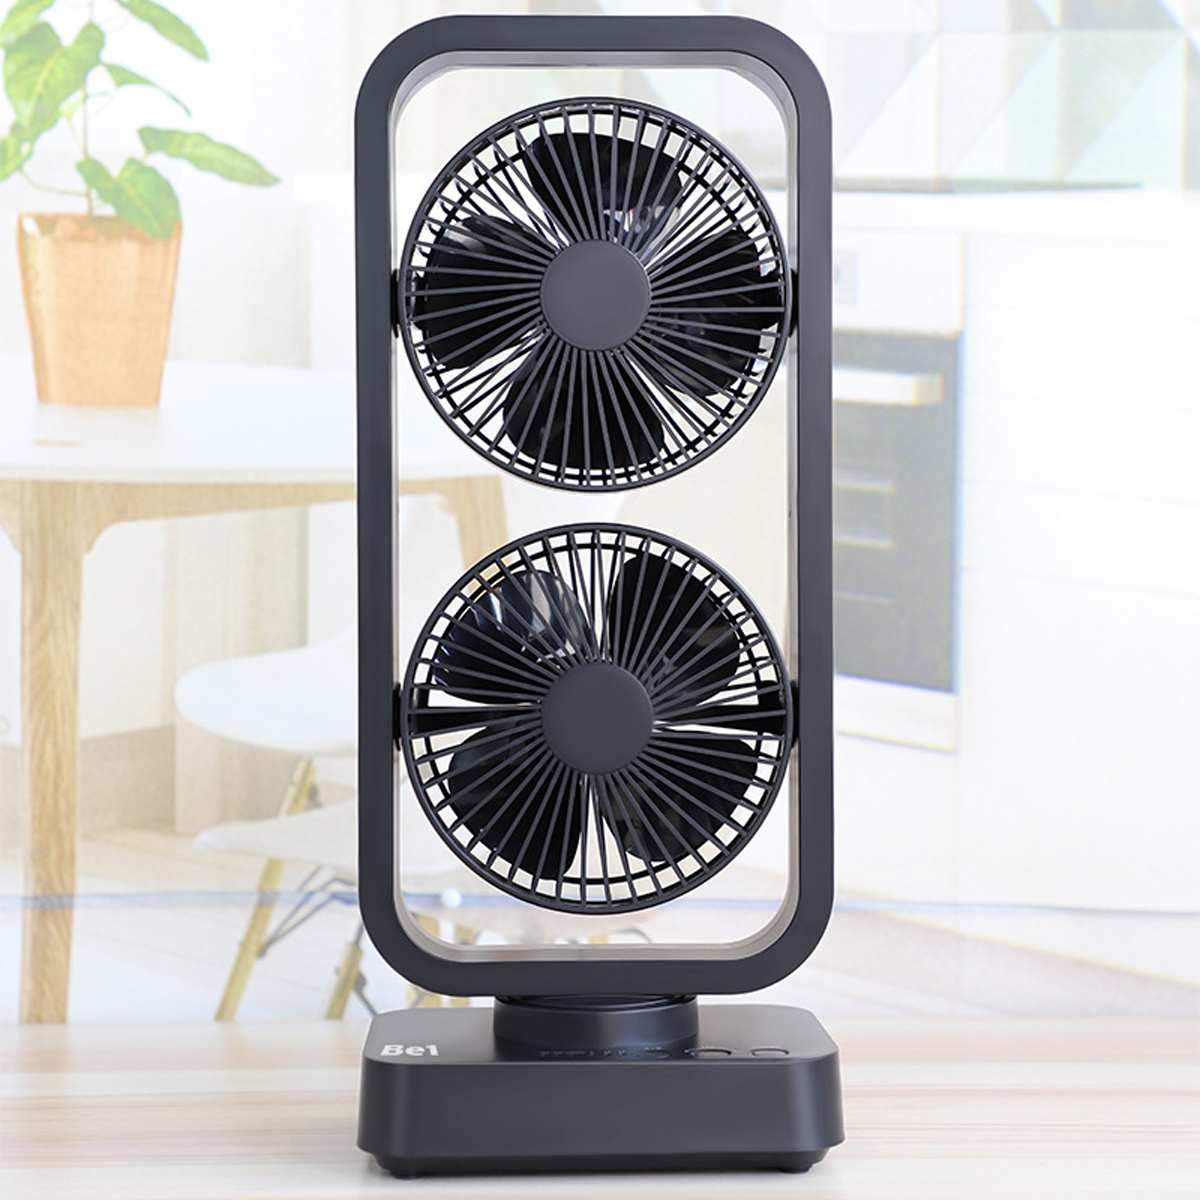 USB Electric Double Tower Fan Double Vane Usb Fan Energy Saving Mini Size For Office Home